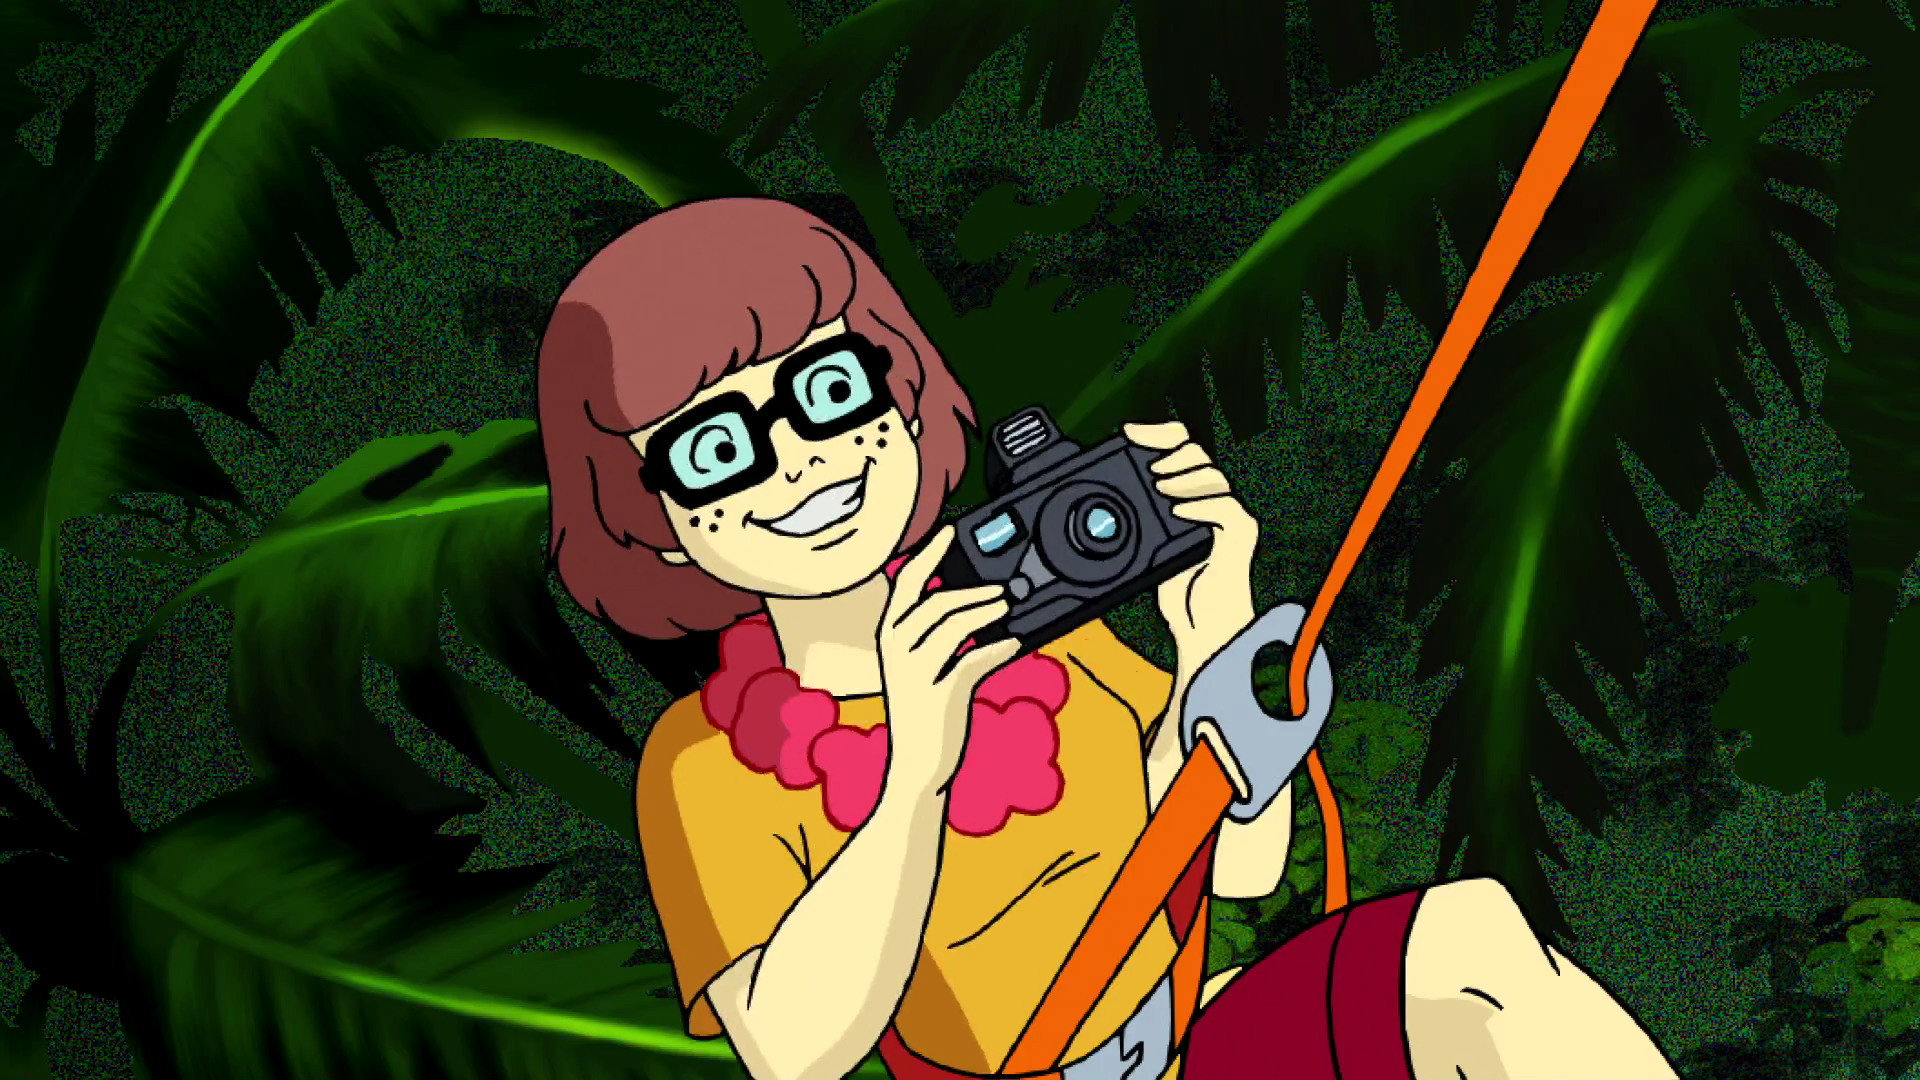 1920x1080 Velma | The Powerpuff Girls: Action Time Wiki | FANDOM powered by Wikia